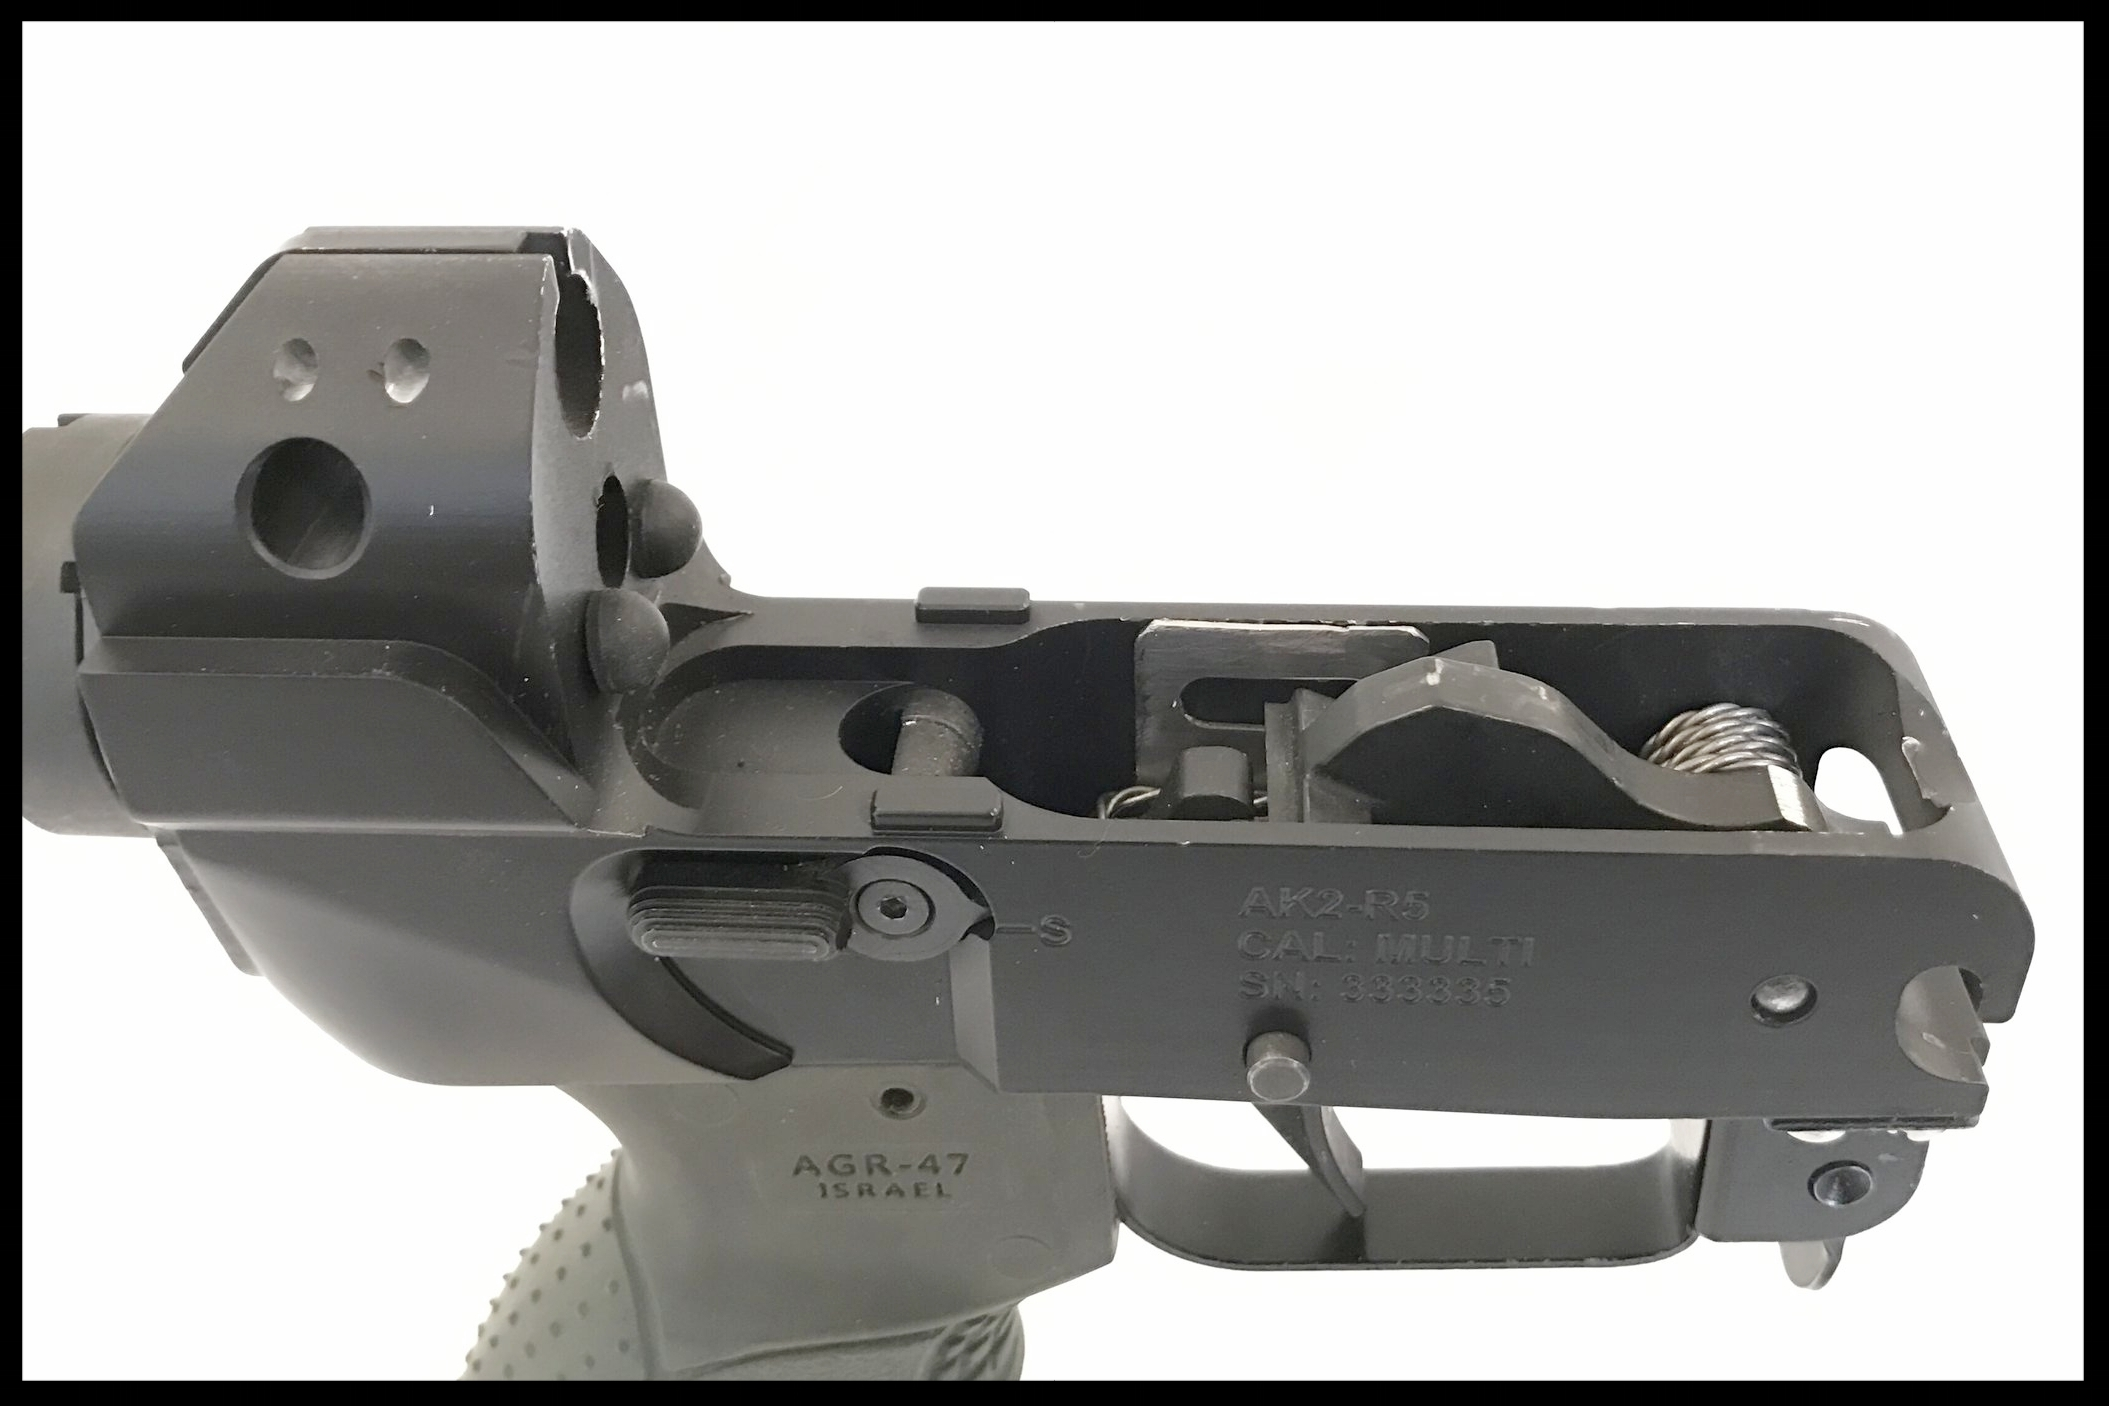 Lower Receiver/ trigger group  The lower receiver allows easy access to the trigger group which has improved feel and reset. Dual Integrated bump stops have reduced felt recoil.